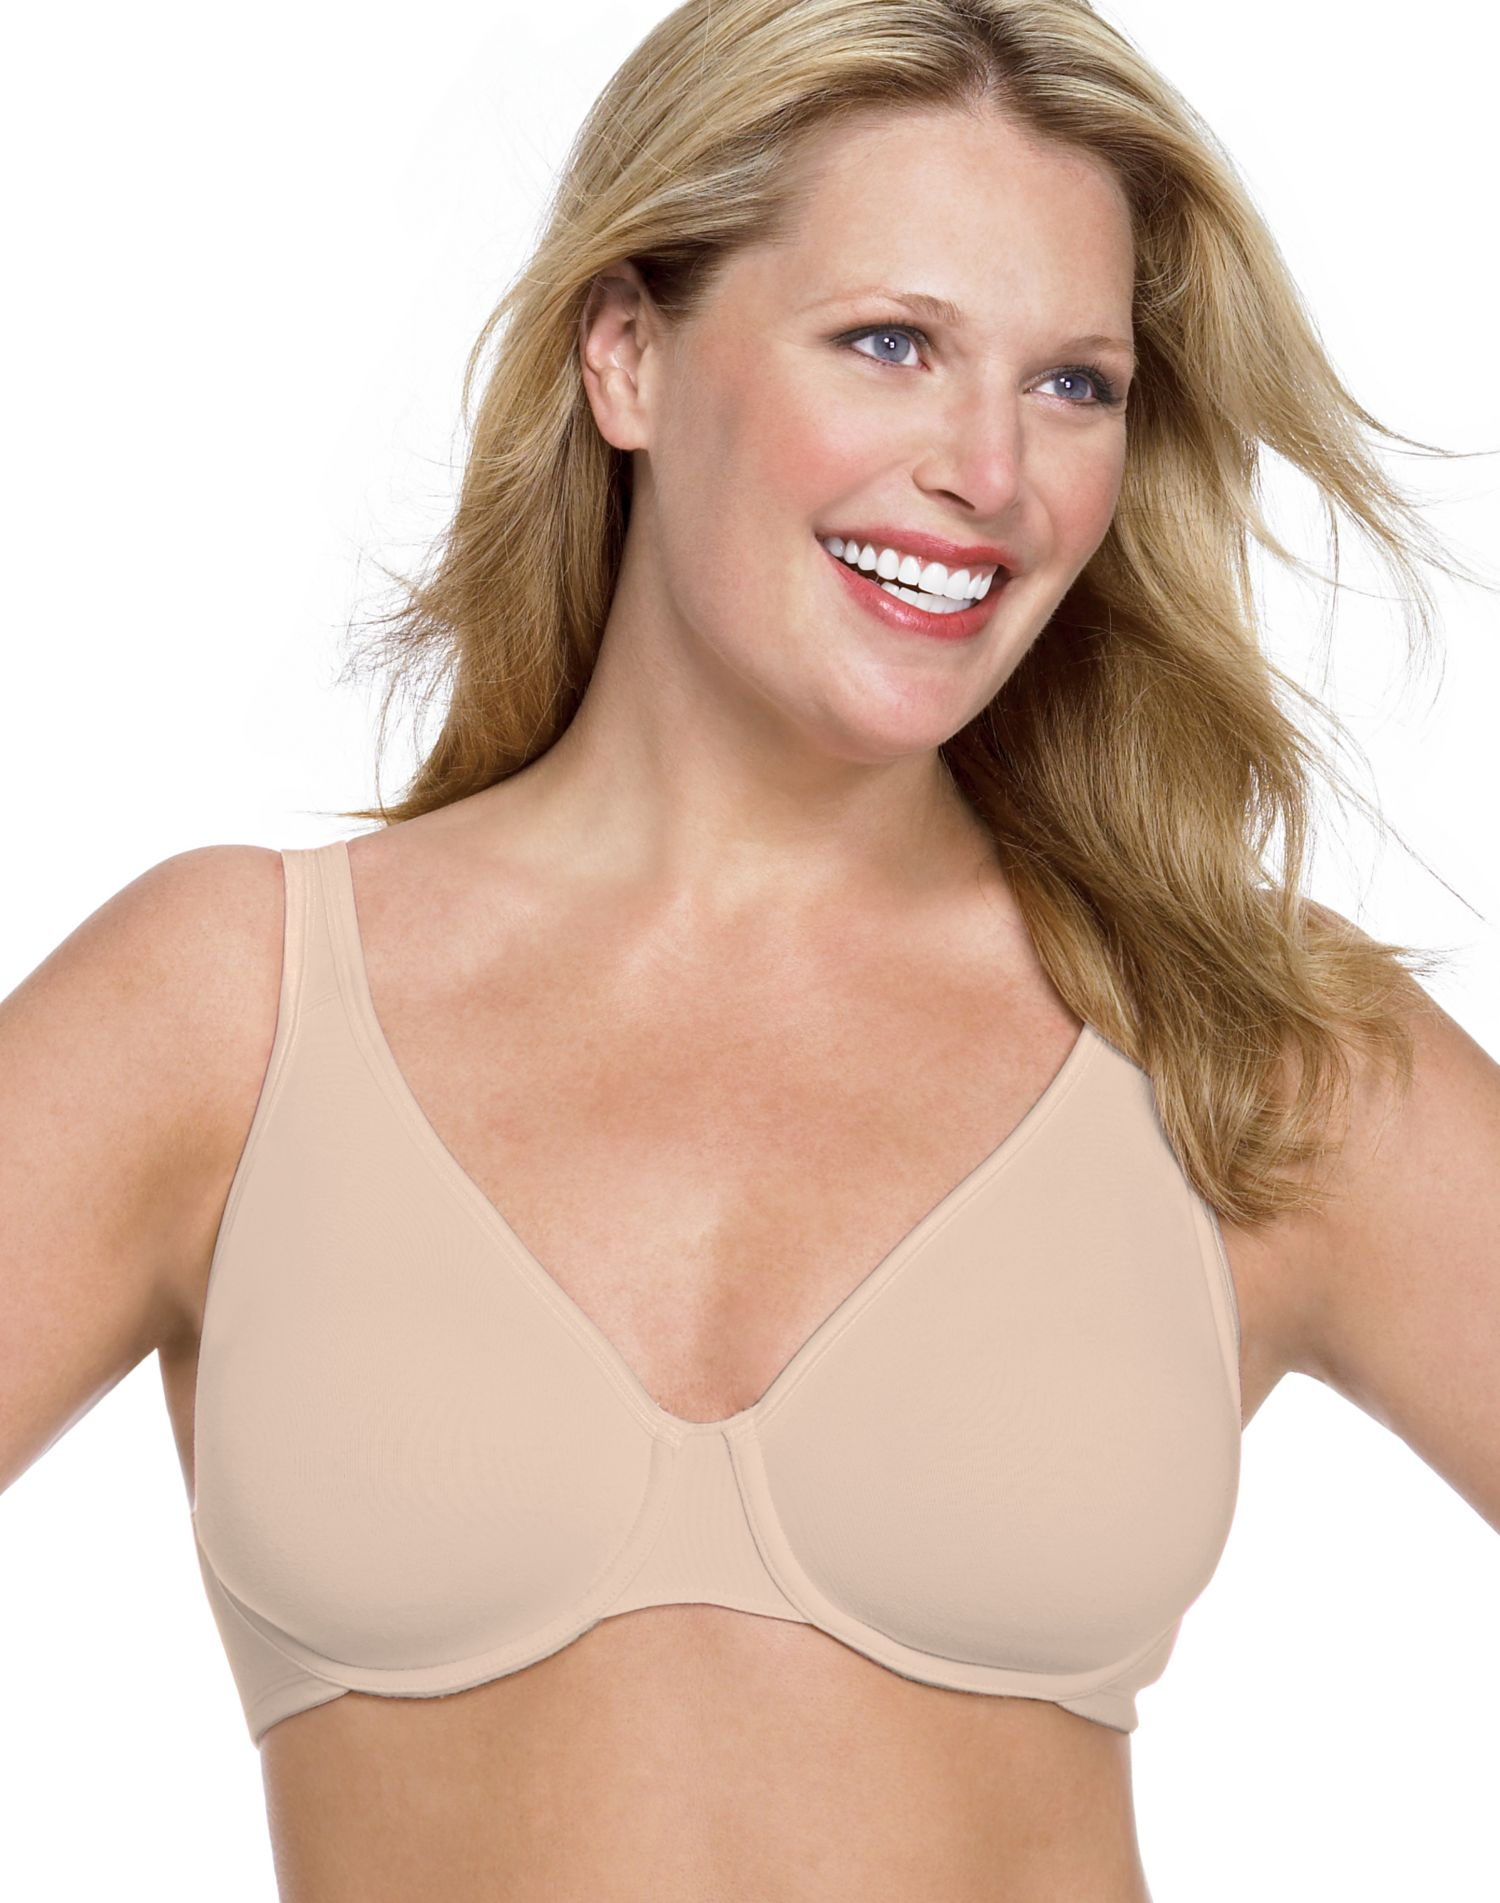 Playtex All Cotton Bras | Playtex 100 Cotton Bras